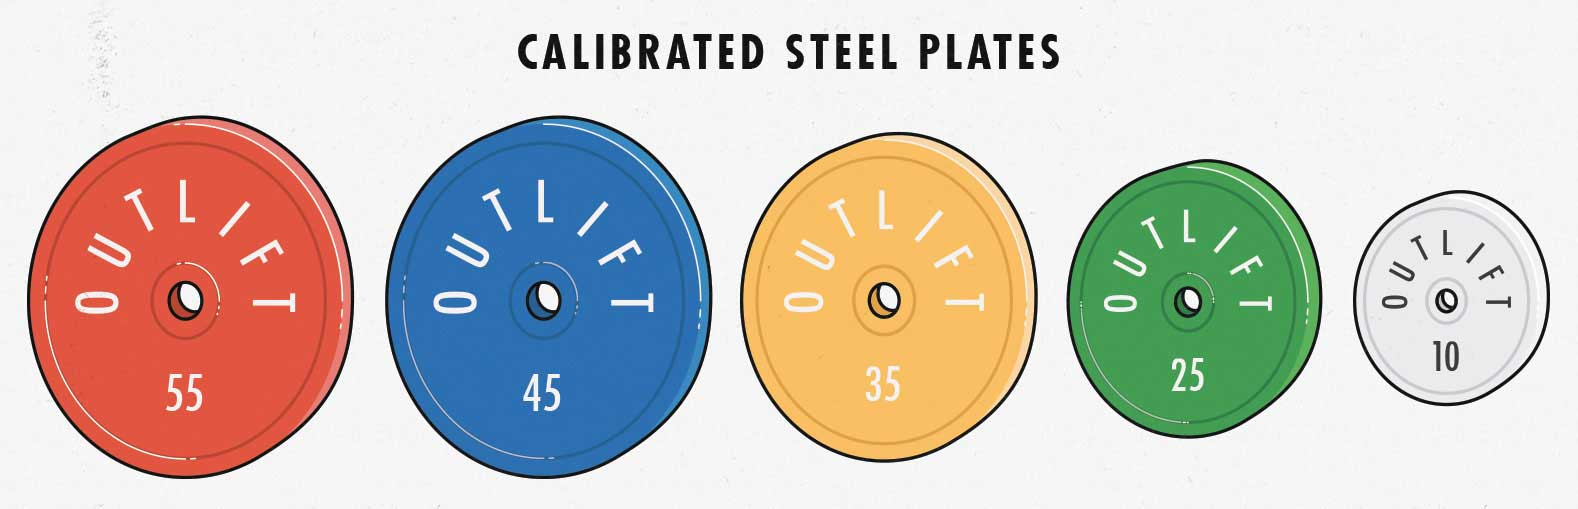 The best calibrated steel plates to buy for your barbell home gym, bulking up, gaining strength, size, aesthetics, bodybuilding